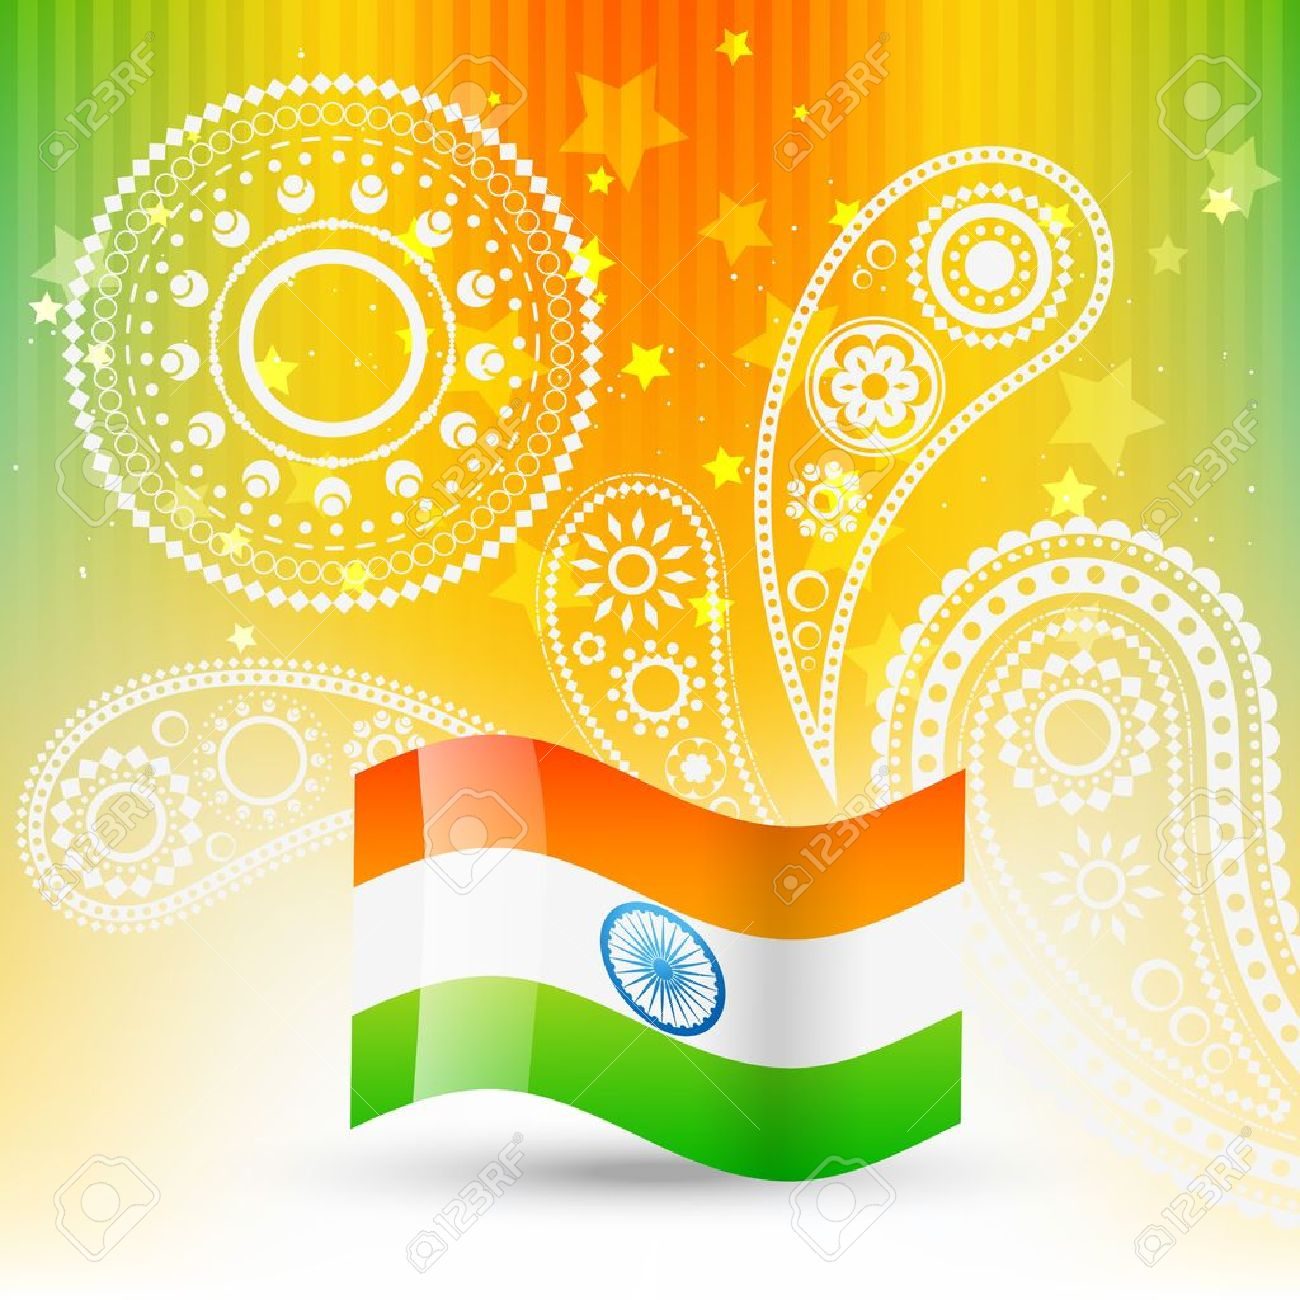 Stylish Indian Flag Wallpapers Indian Flag Stylish Flag of